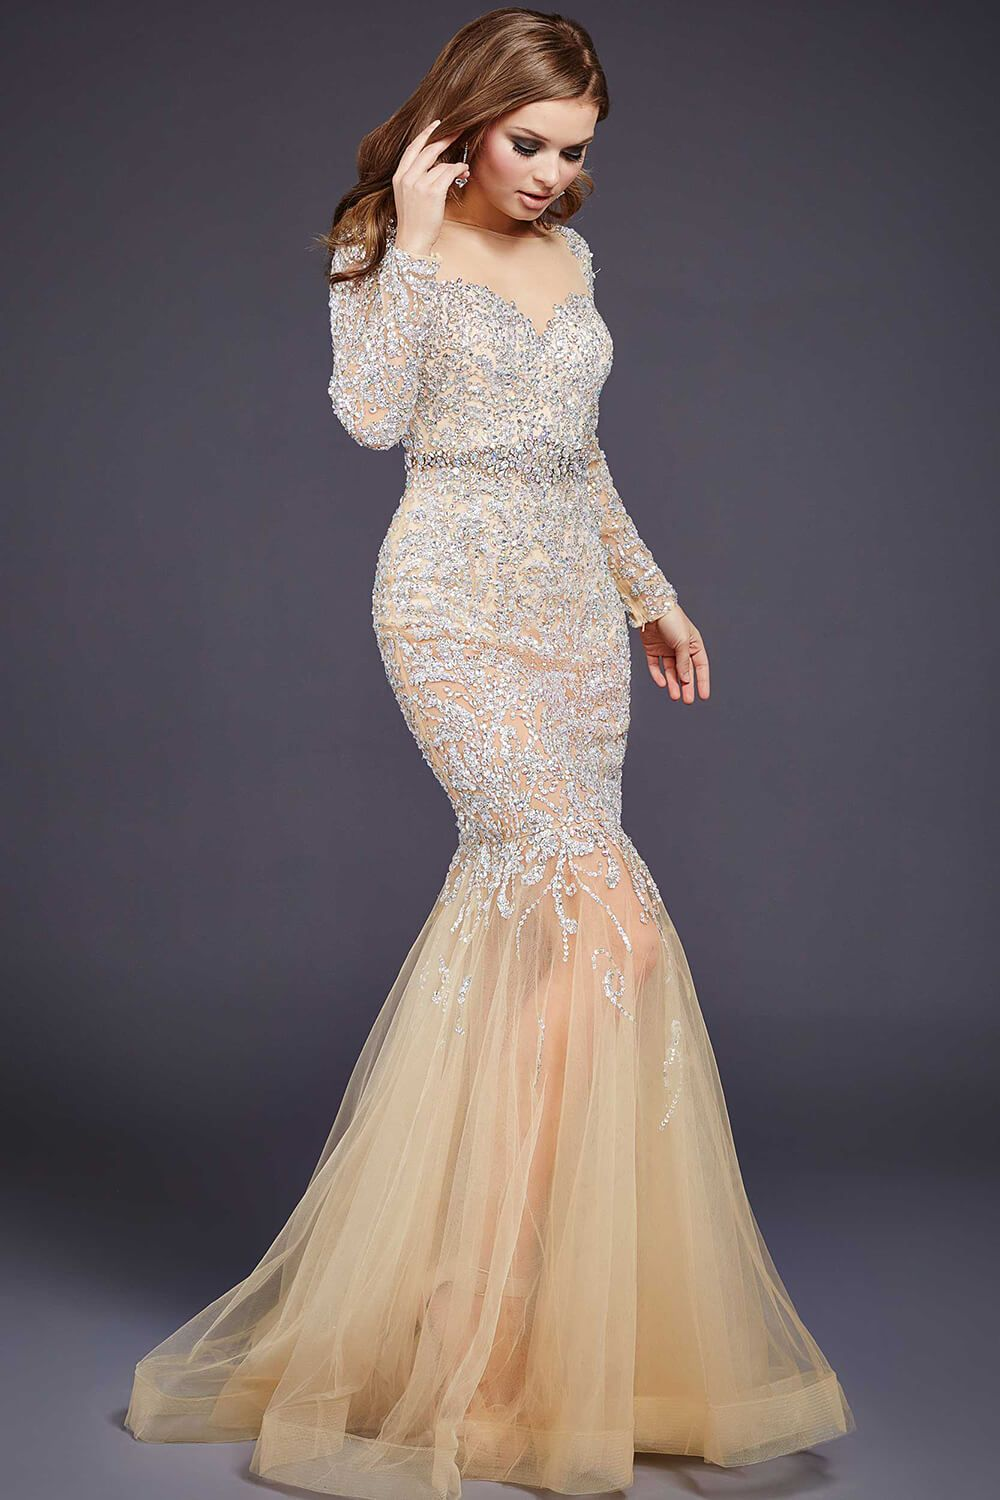 17 Best images about Evening dress on Pinterest - Lace top dress ...